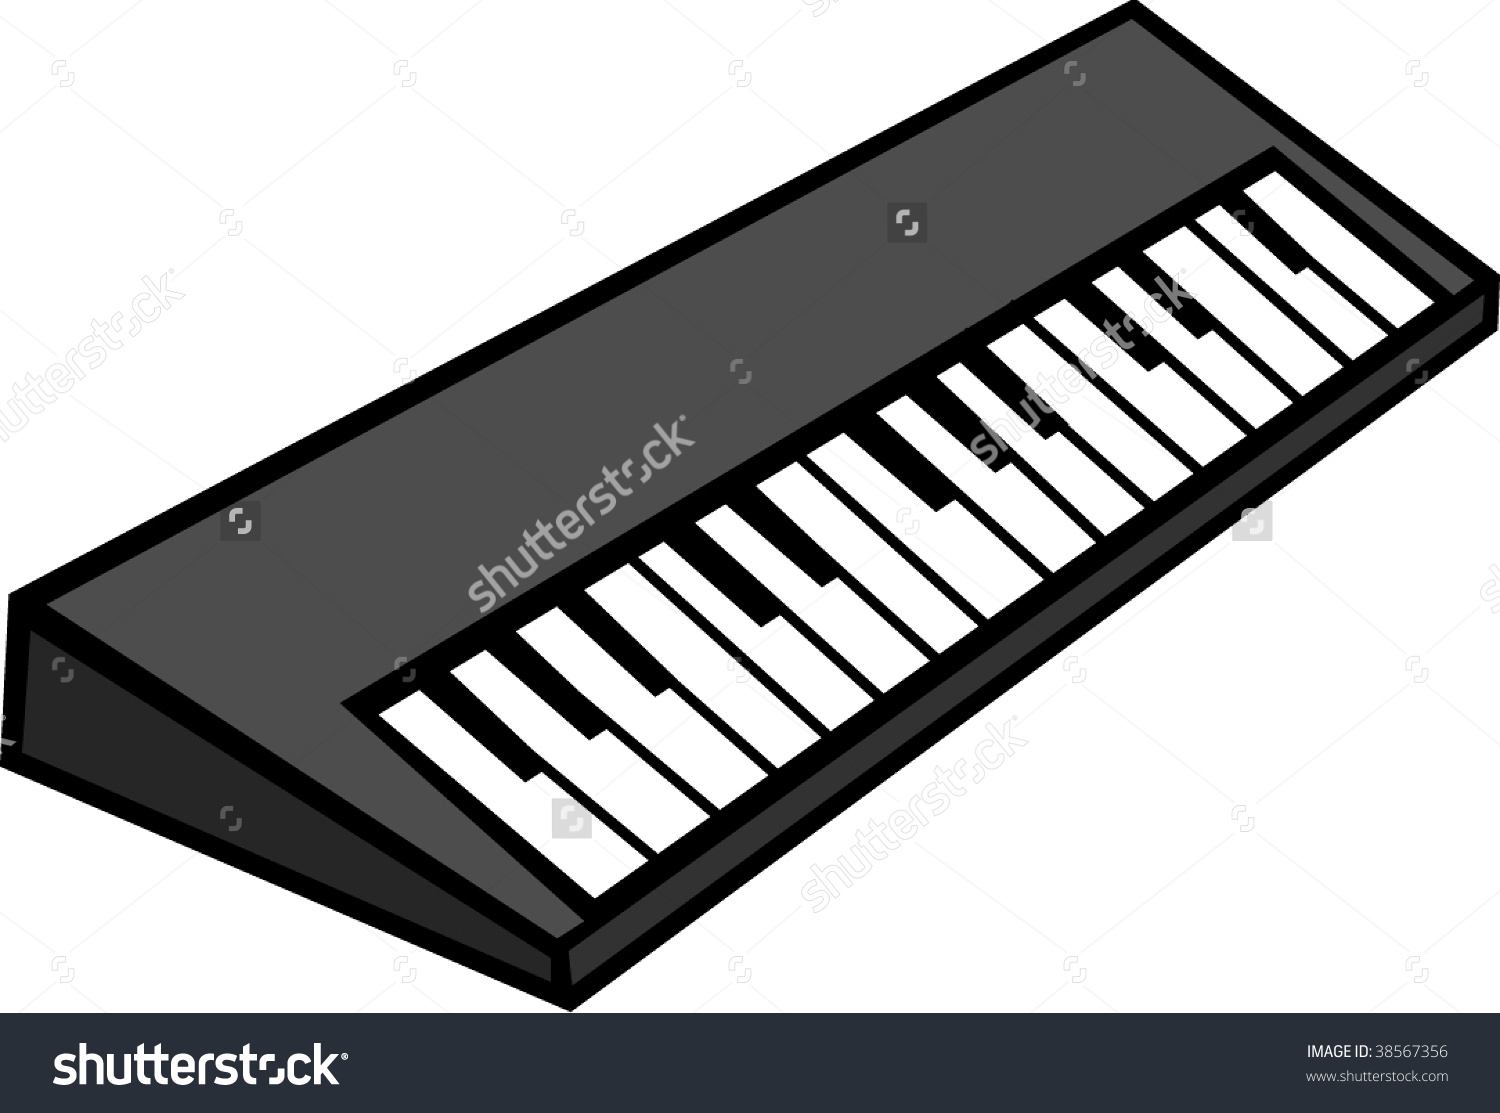 Electronic Musical Keyboard Synthesizer Stock Vector 38567356.